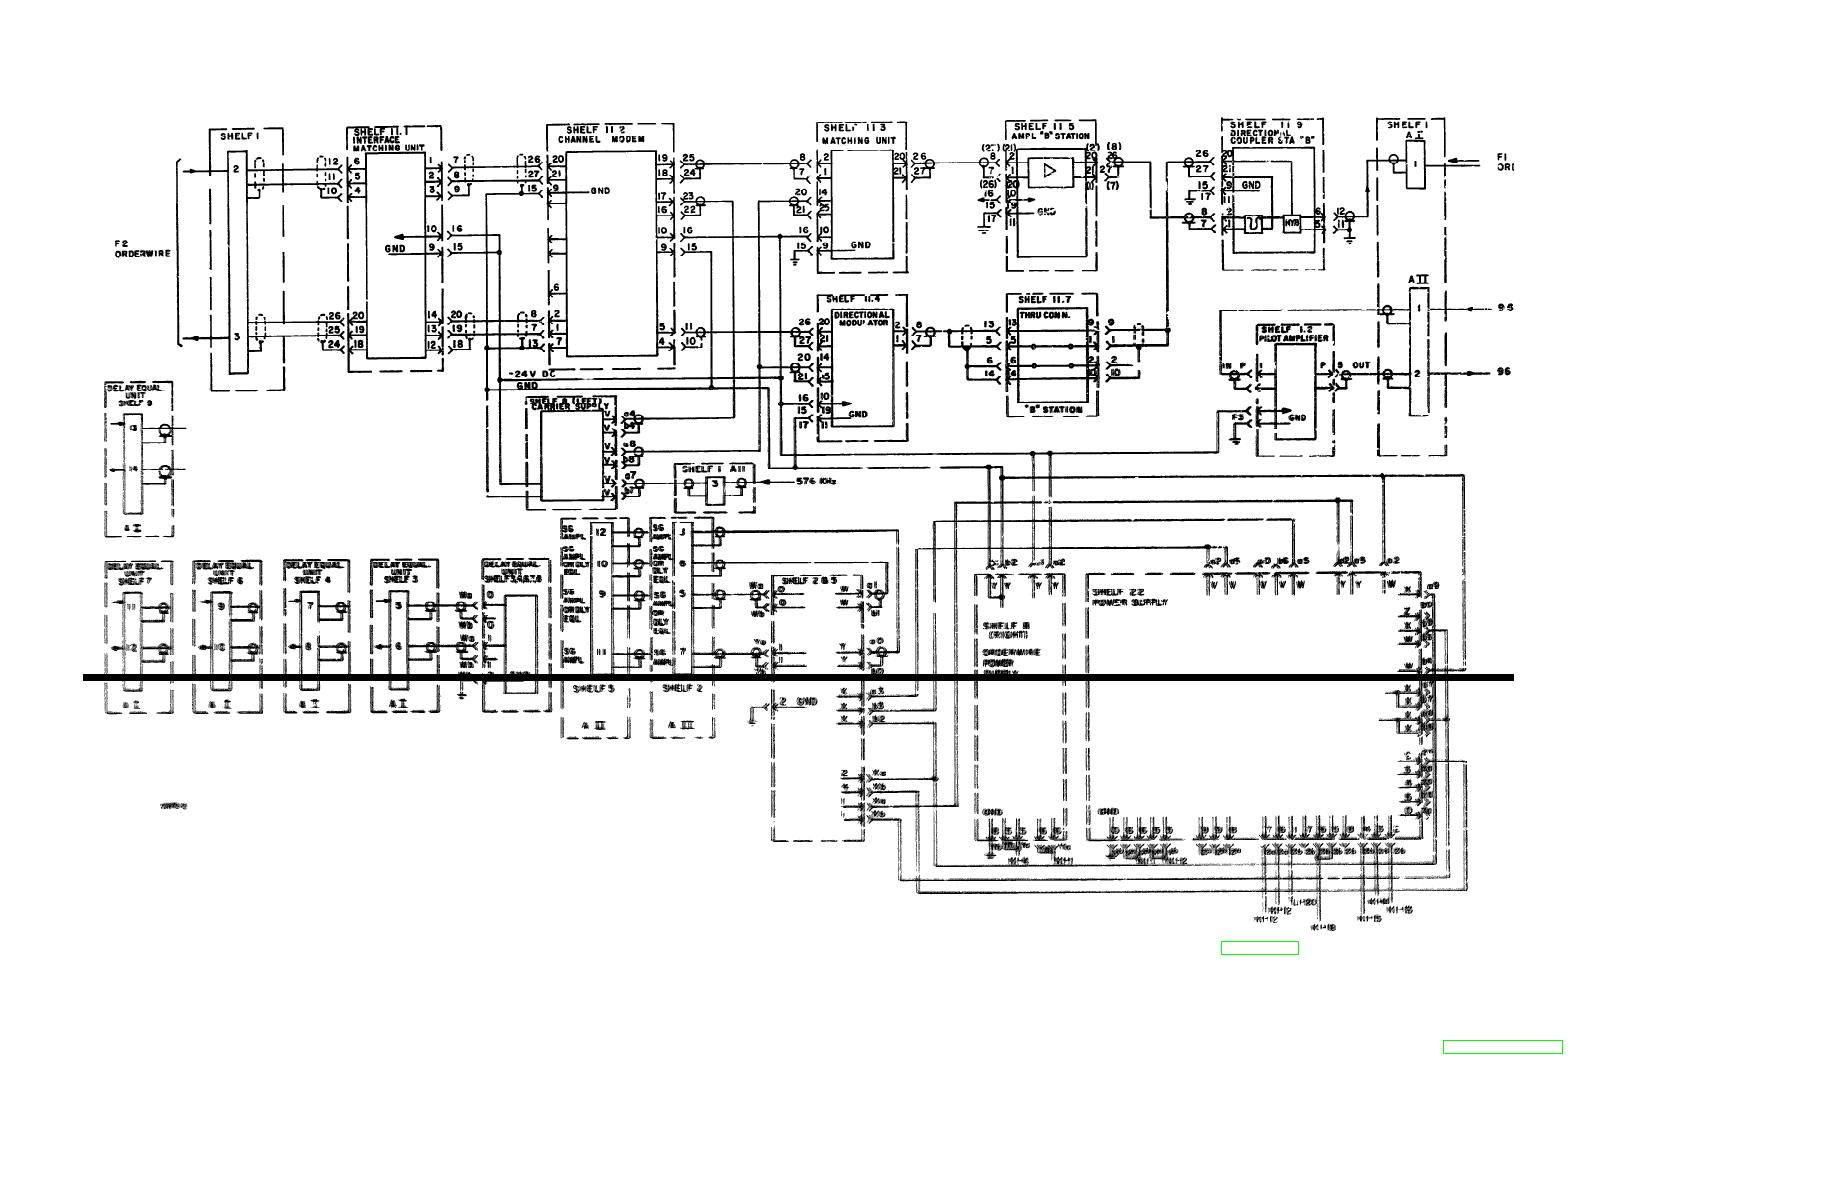 Bay Engineering Schematics Illustration Of Wiring Diagram Wow Fo 2 Orderwire Delay Equalizer Schematic Tf1786 Terminal B Vendor Recipes Industrial Symbols